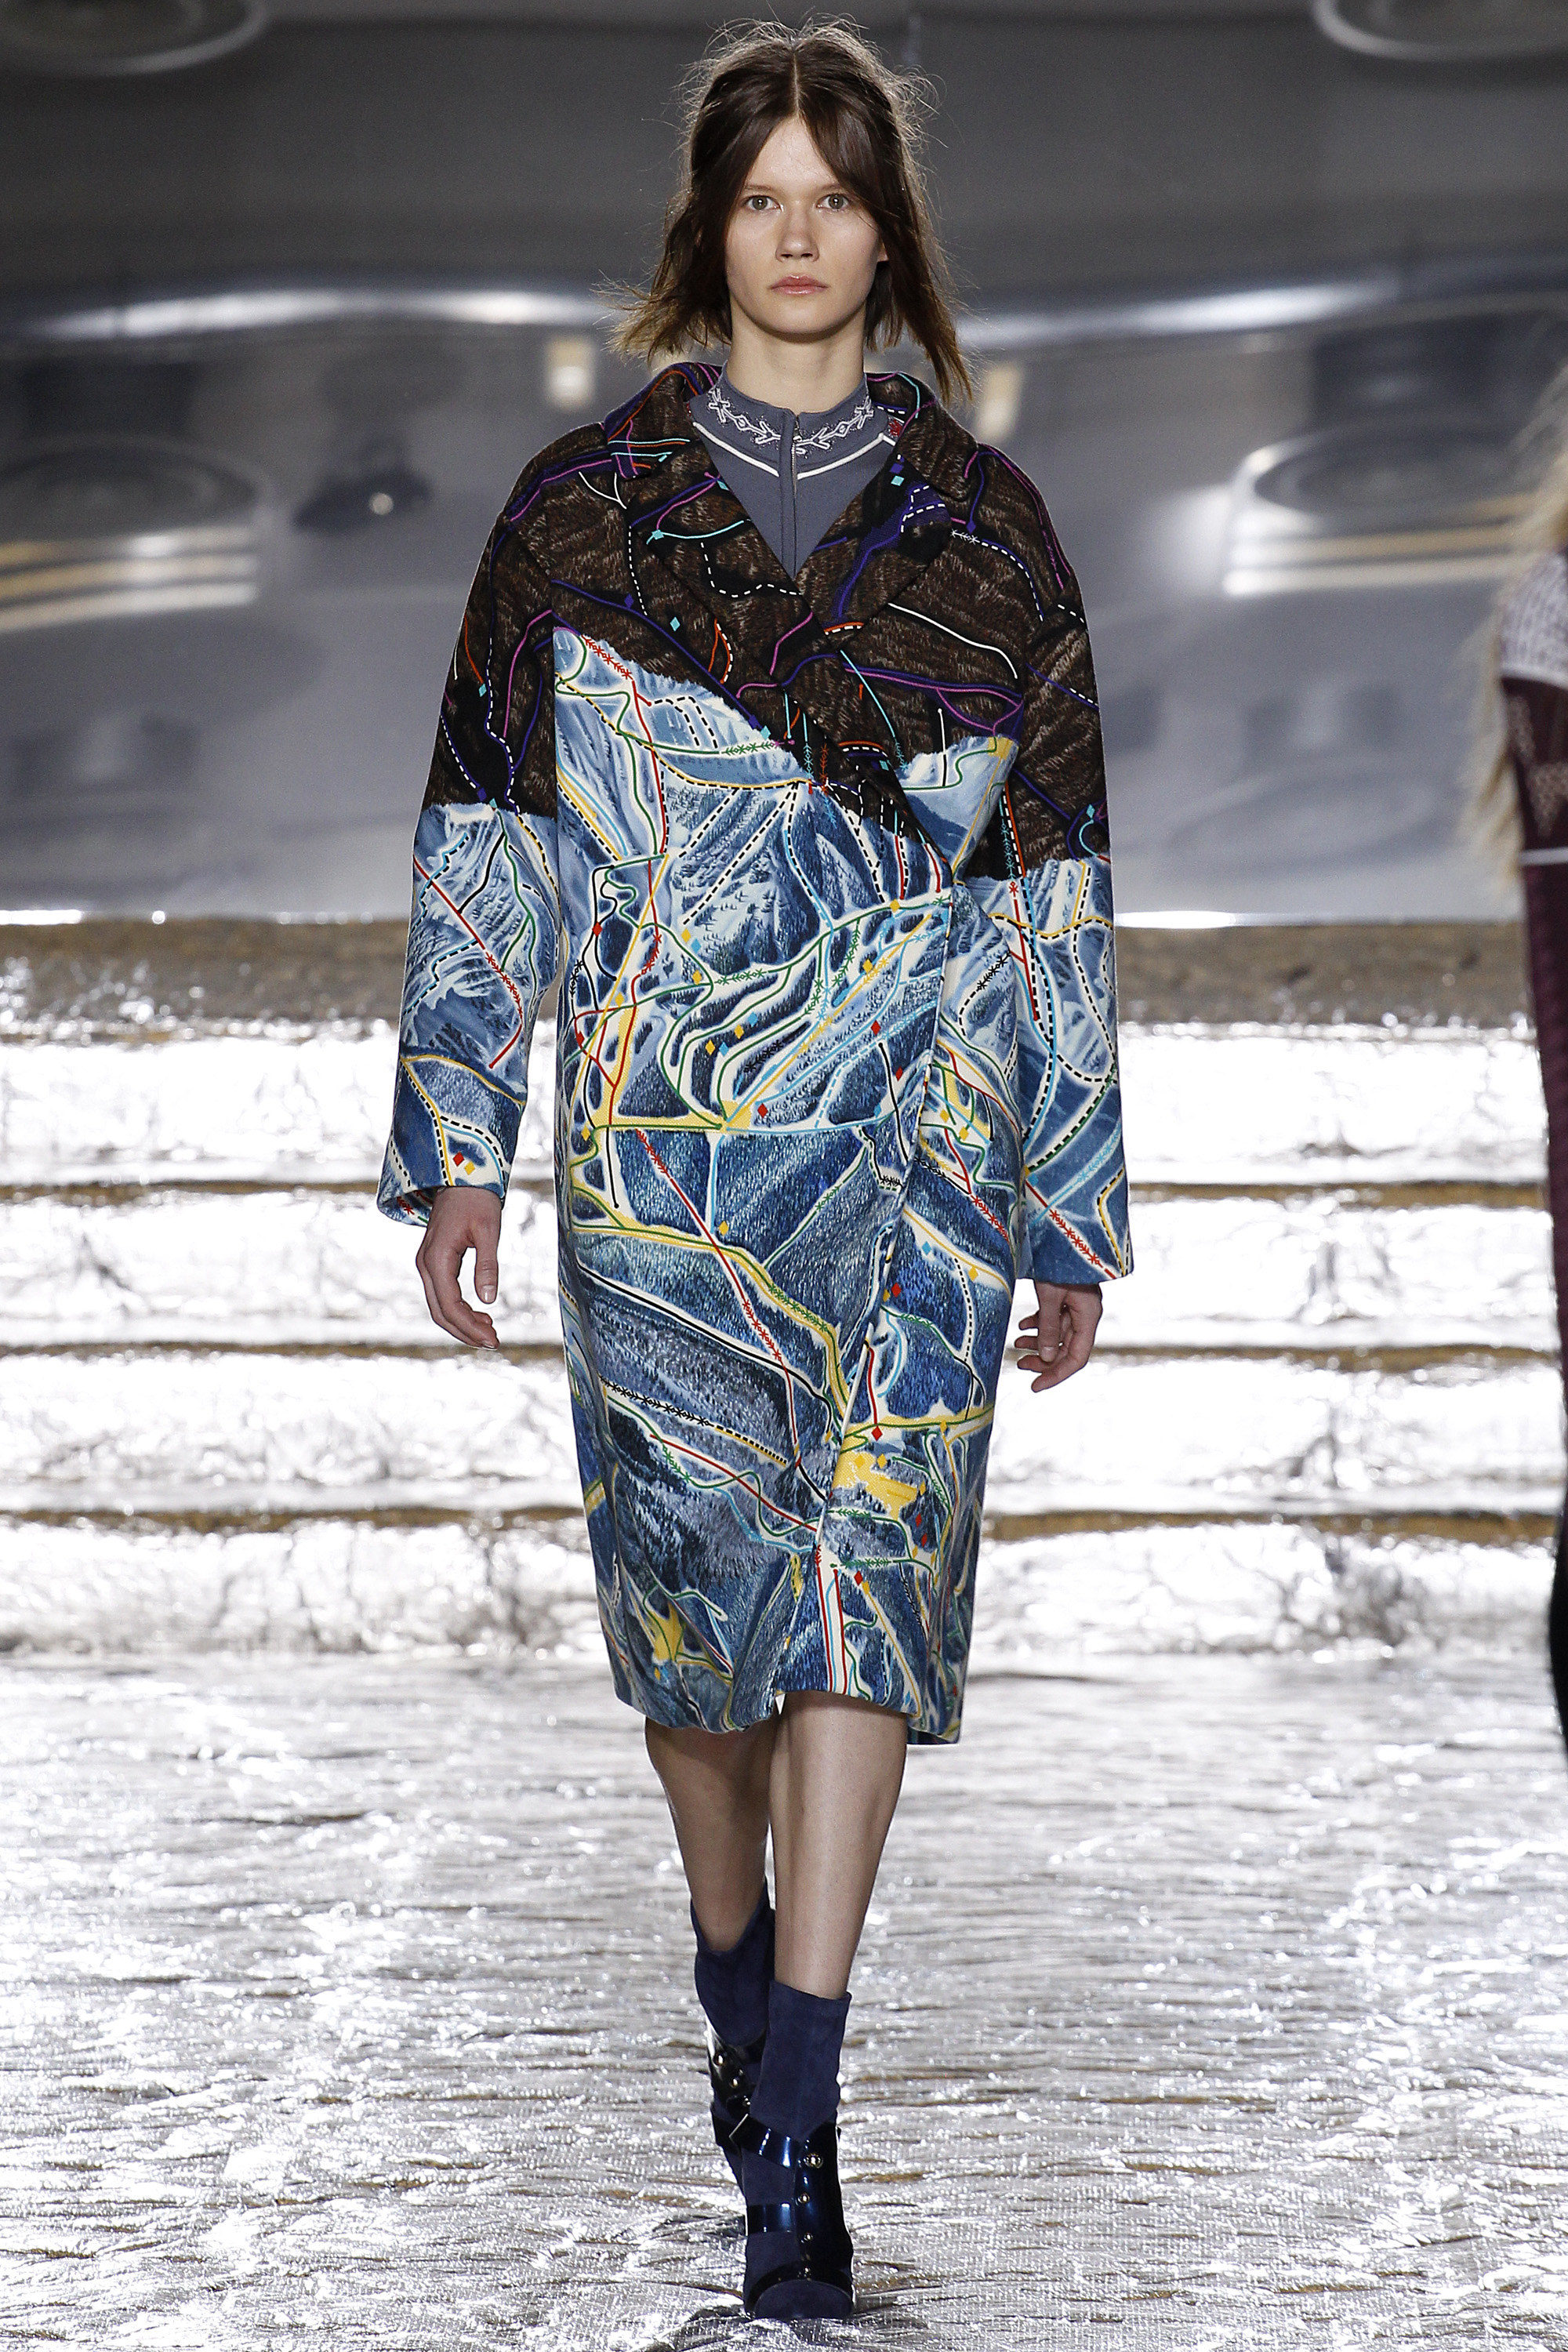 Peter-Pilotto-Autumn-Winter-Fall-2016-London-Fashion-Week-6.jpg